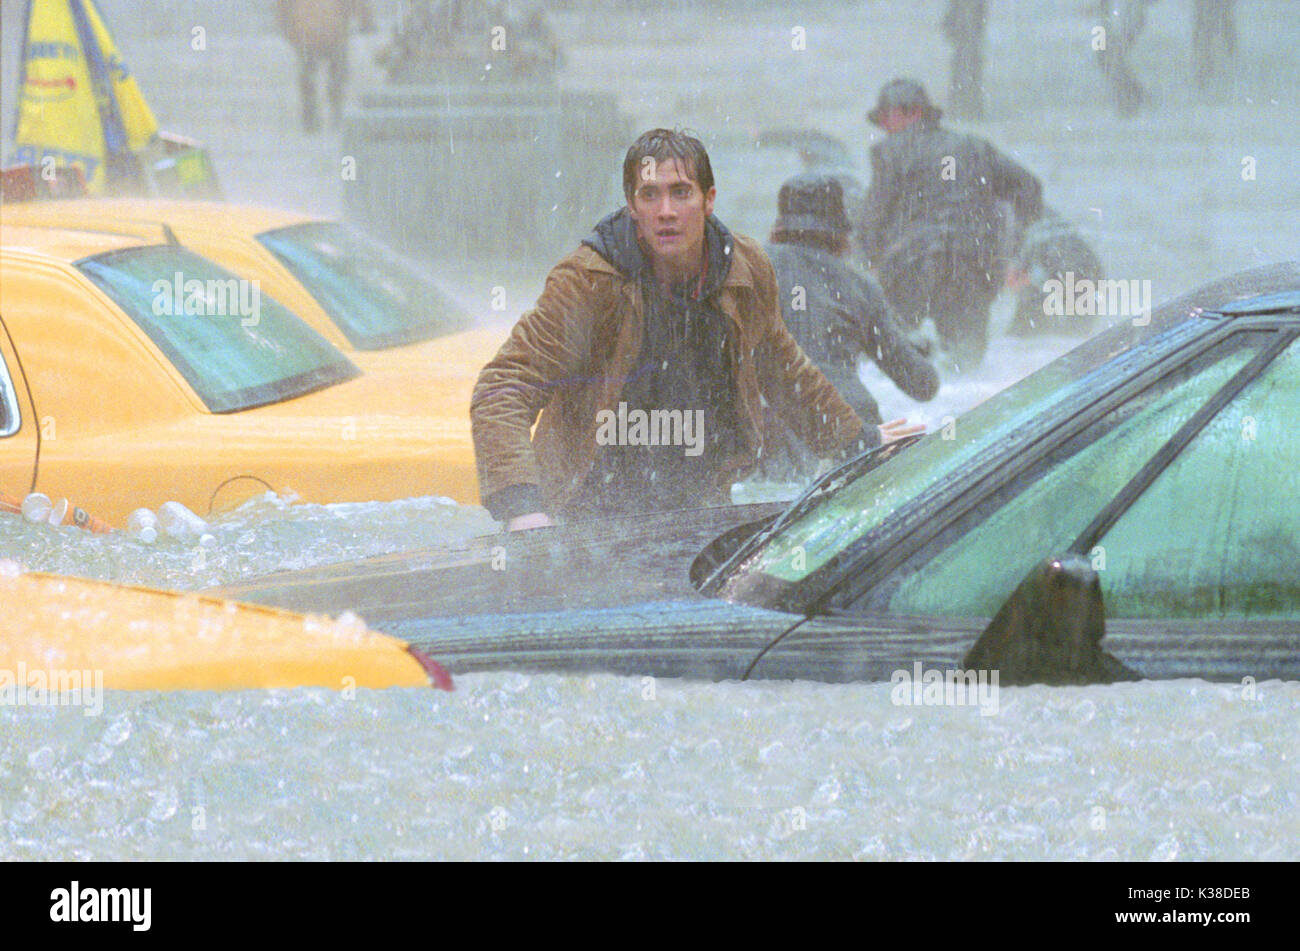 THE DAY AFTER TOMORROW JAKE GYLLENHAAL SUBJECT: EXTREME WEATHER, RAIN, FLOOD RELEASE BY 20TH CENTURY FOX     Date: 2004 - Stock Image